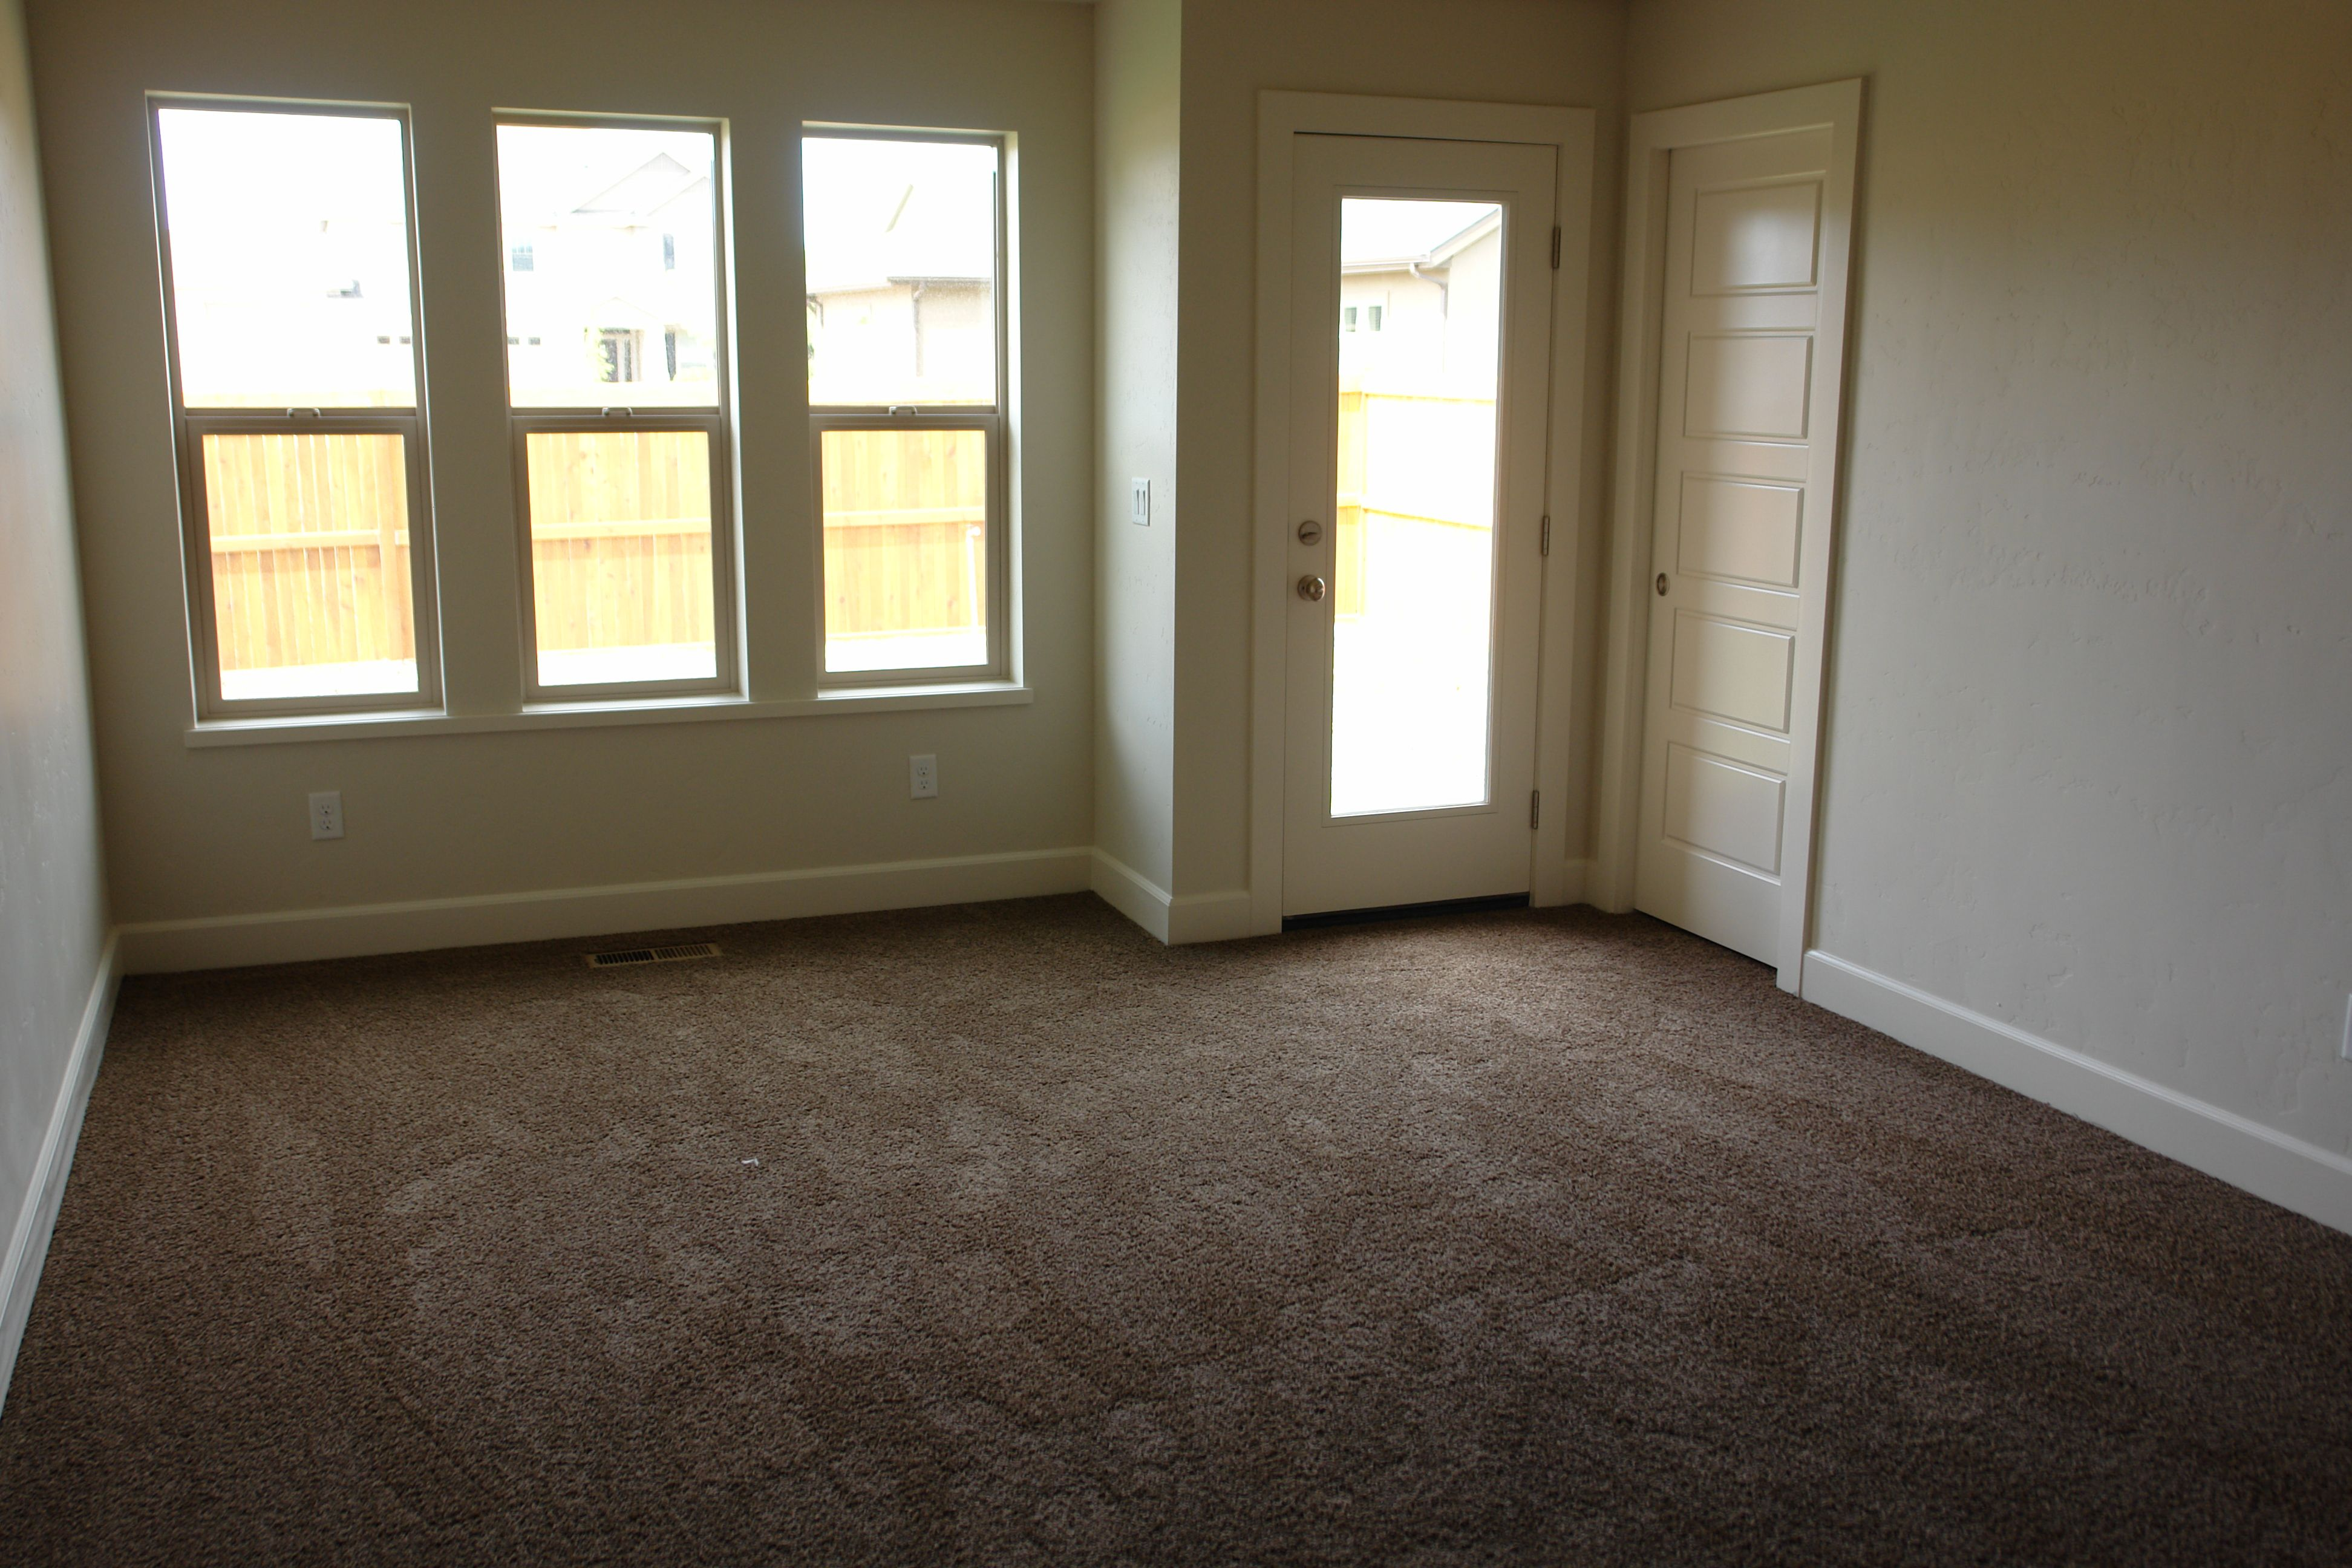 Pin By Matt Capell On New Construction Boise Area Brown Carpet Bedroom Dark Brown Carpet Brown Carpet Living Room